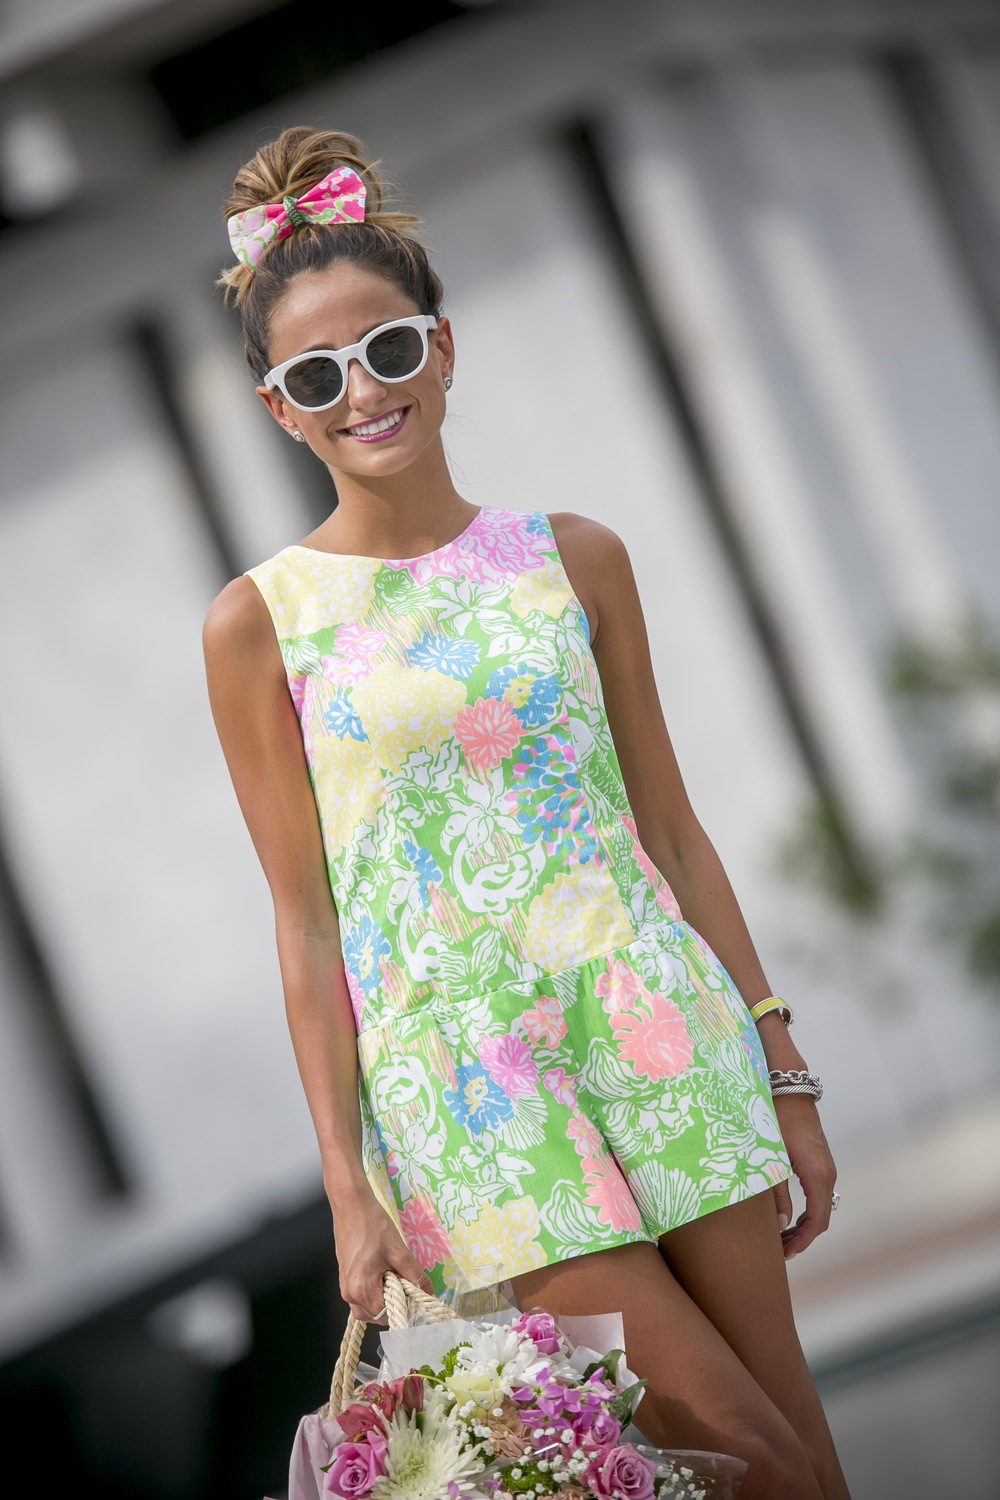 Lilly pulitzer hair bow and romper paired with white sunglasses